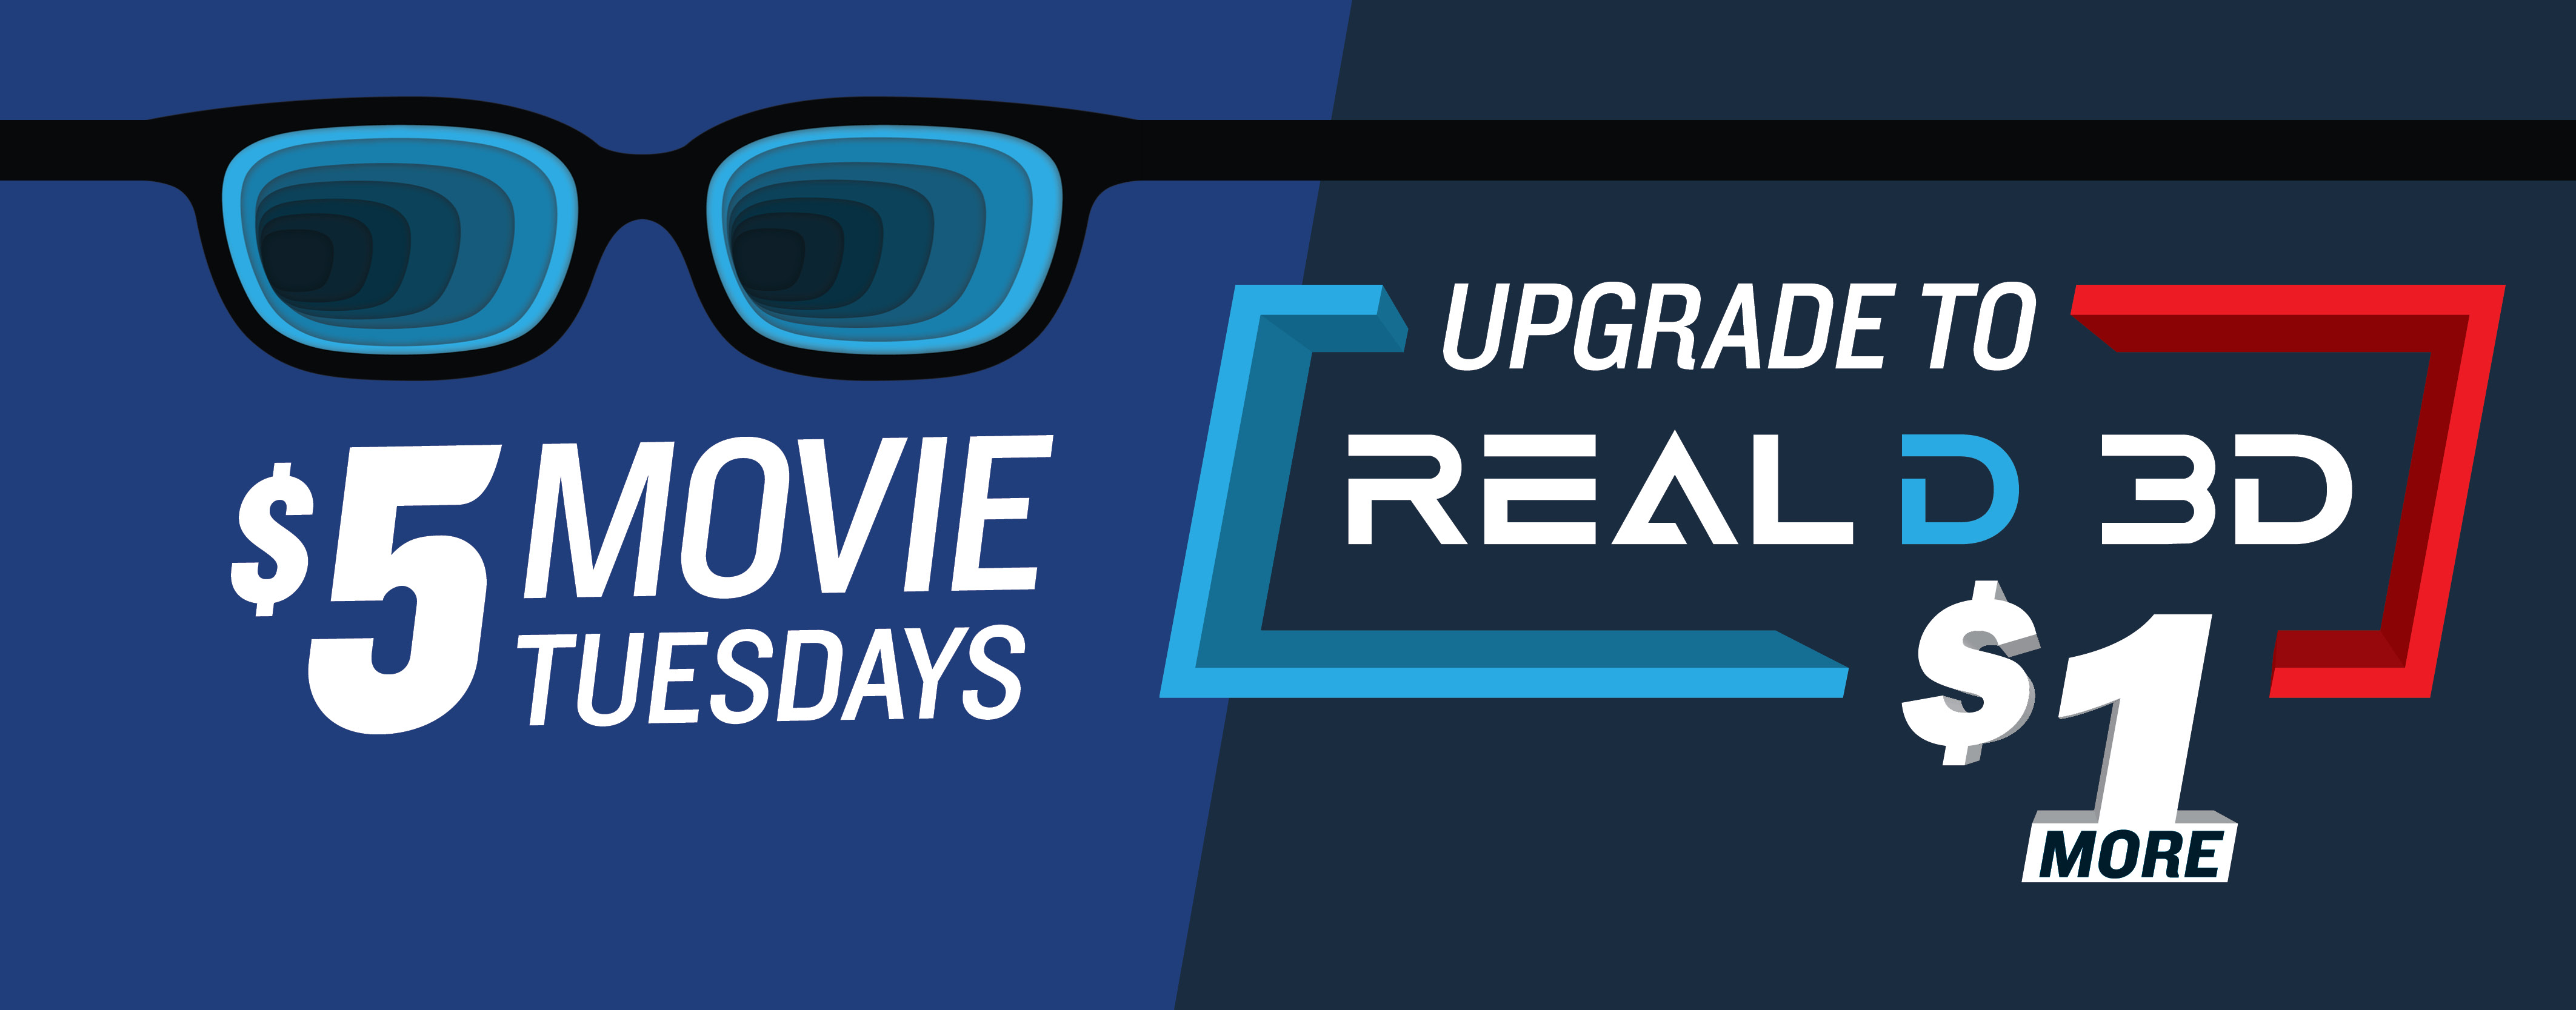 RealD 3D Tuesday Deal